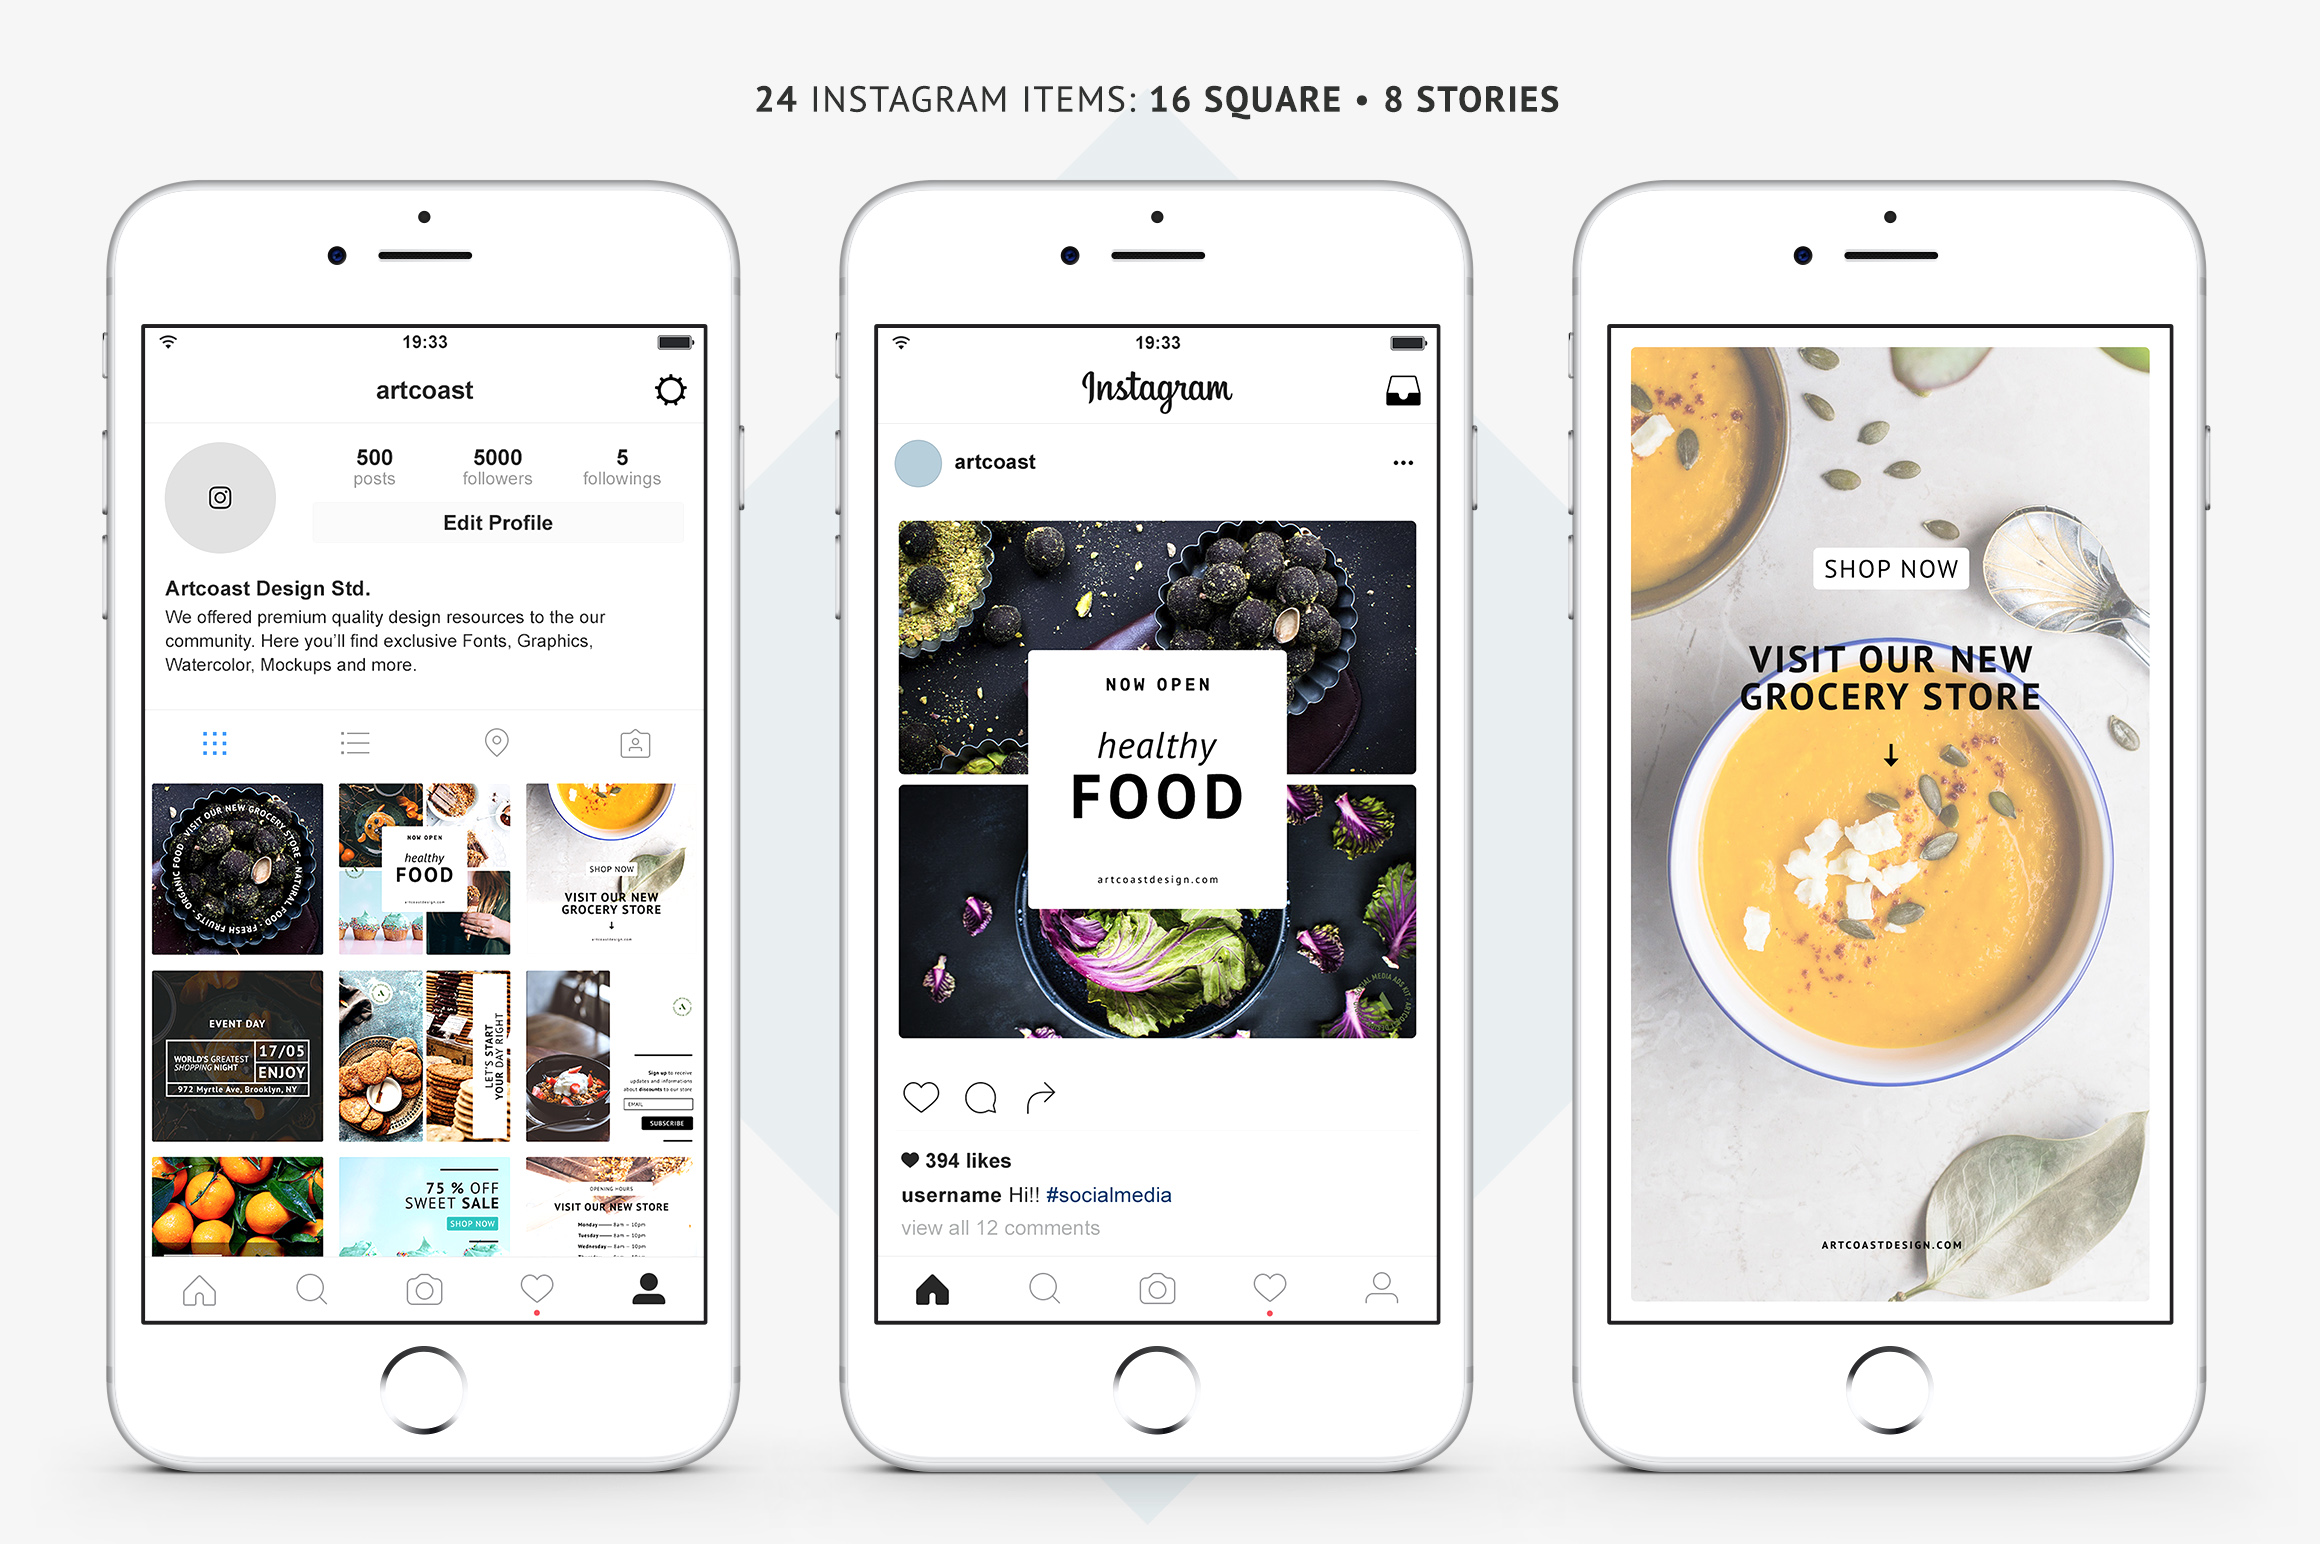 24 Instagram Templates Graphic Graphic Templates By Dmitry Mashkin - Image 4